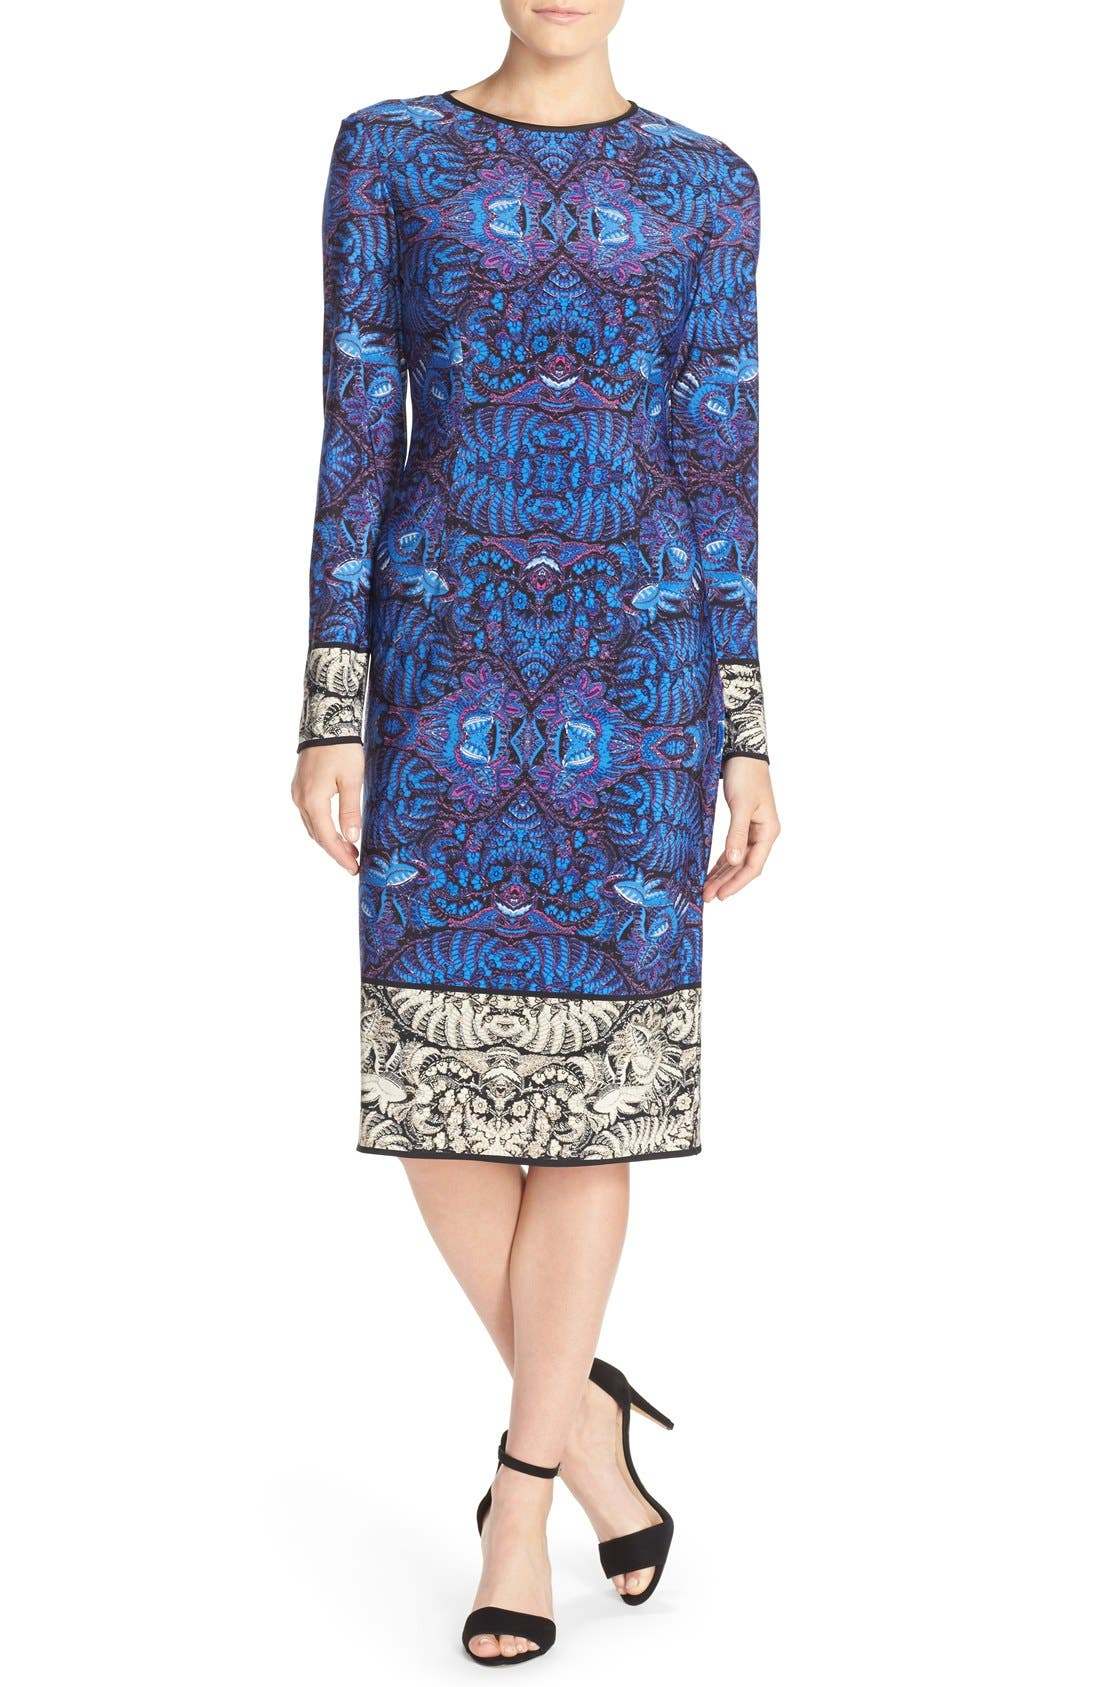 Alternate Image 1 Selected - Maggy London Print Jersey Sheath Dress